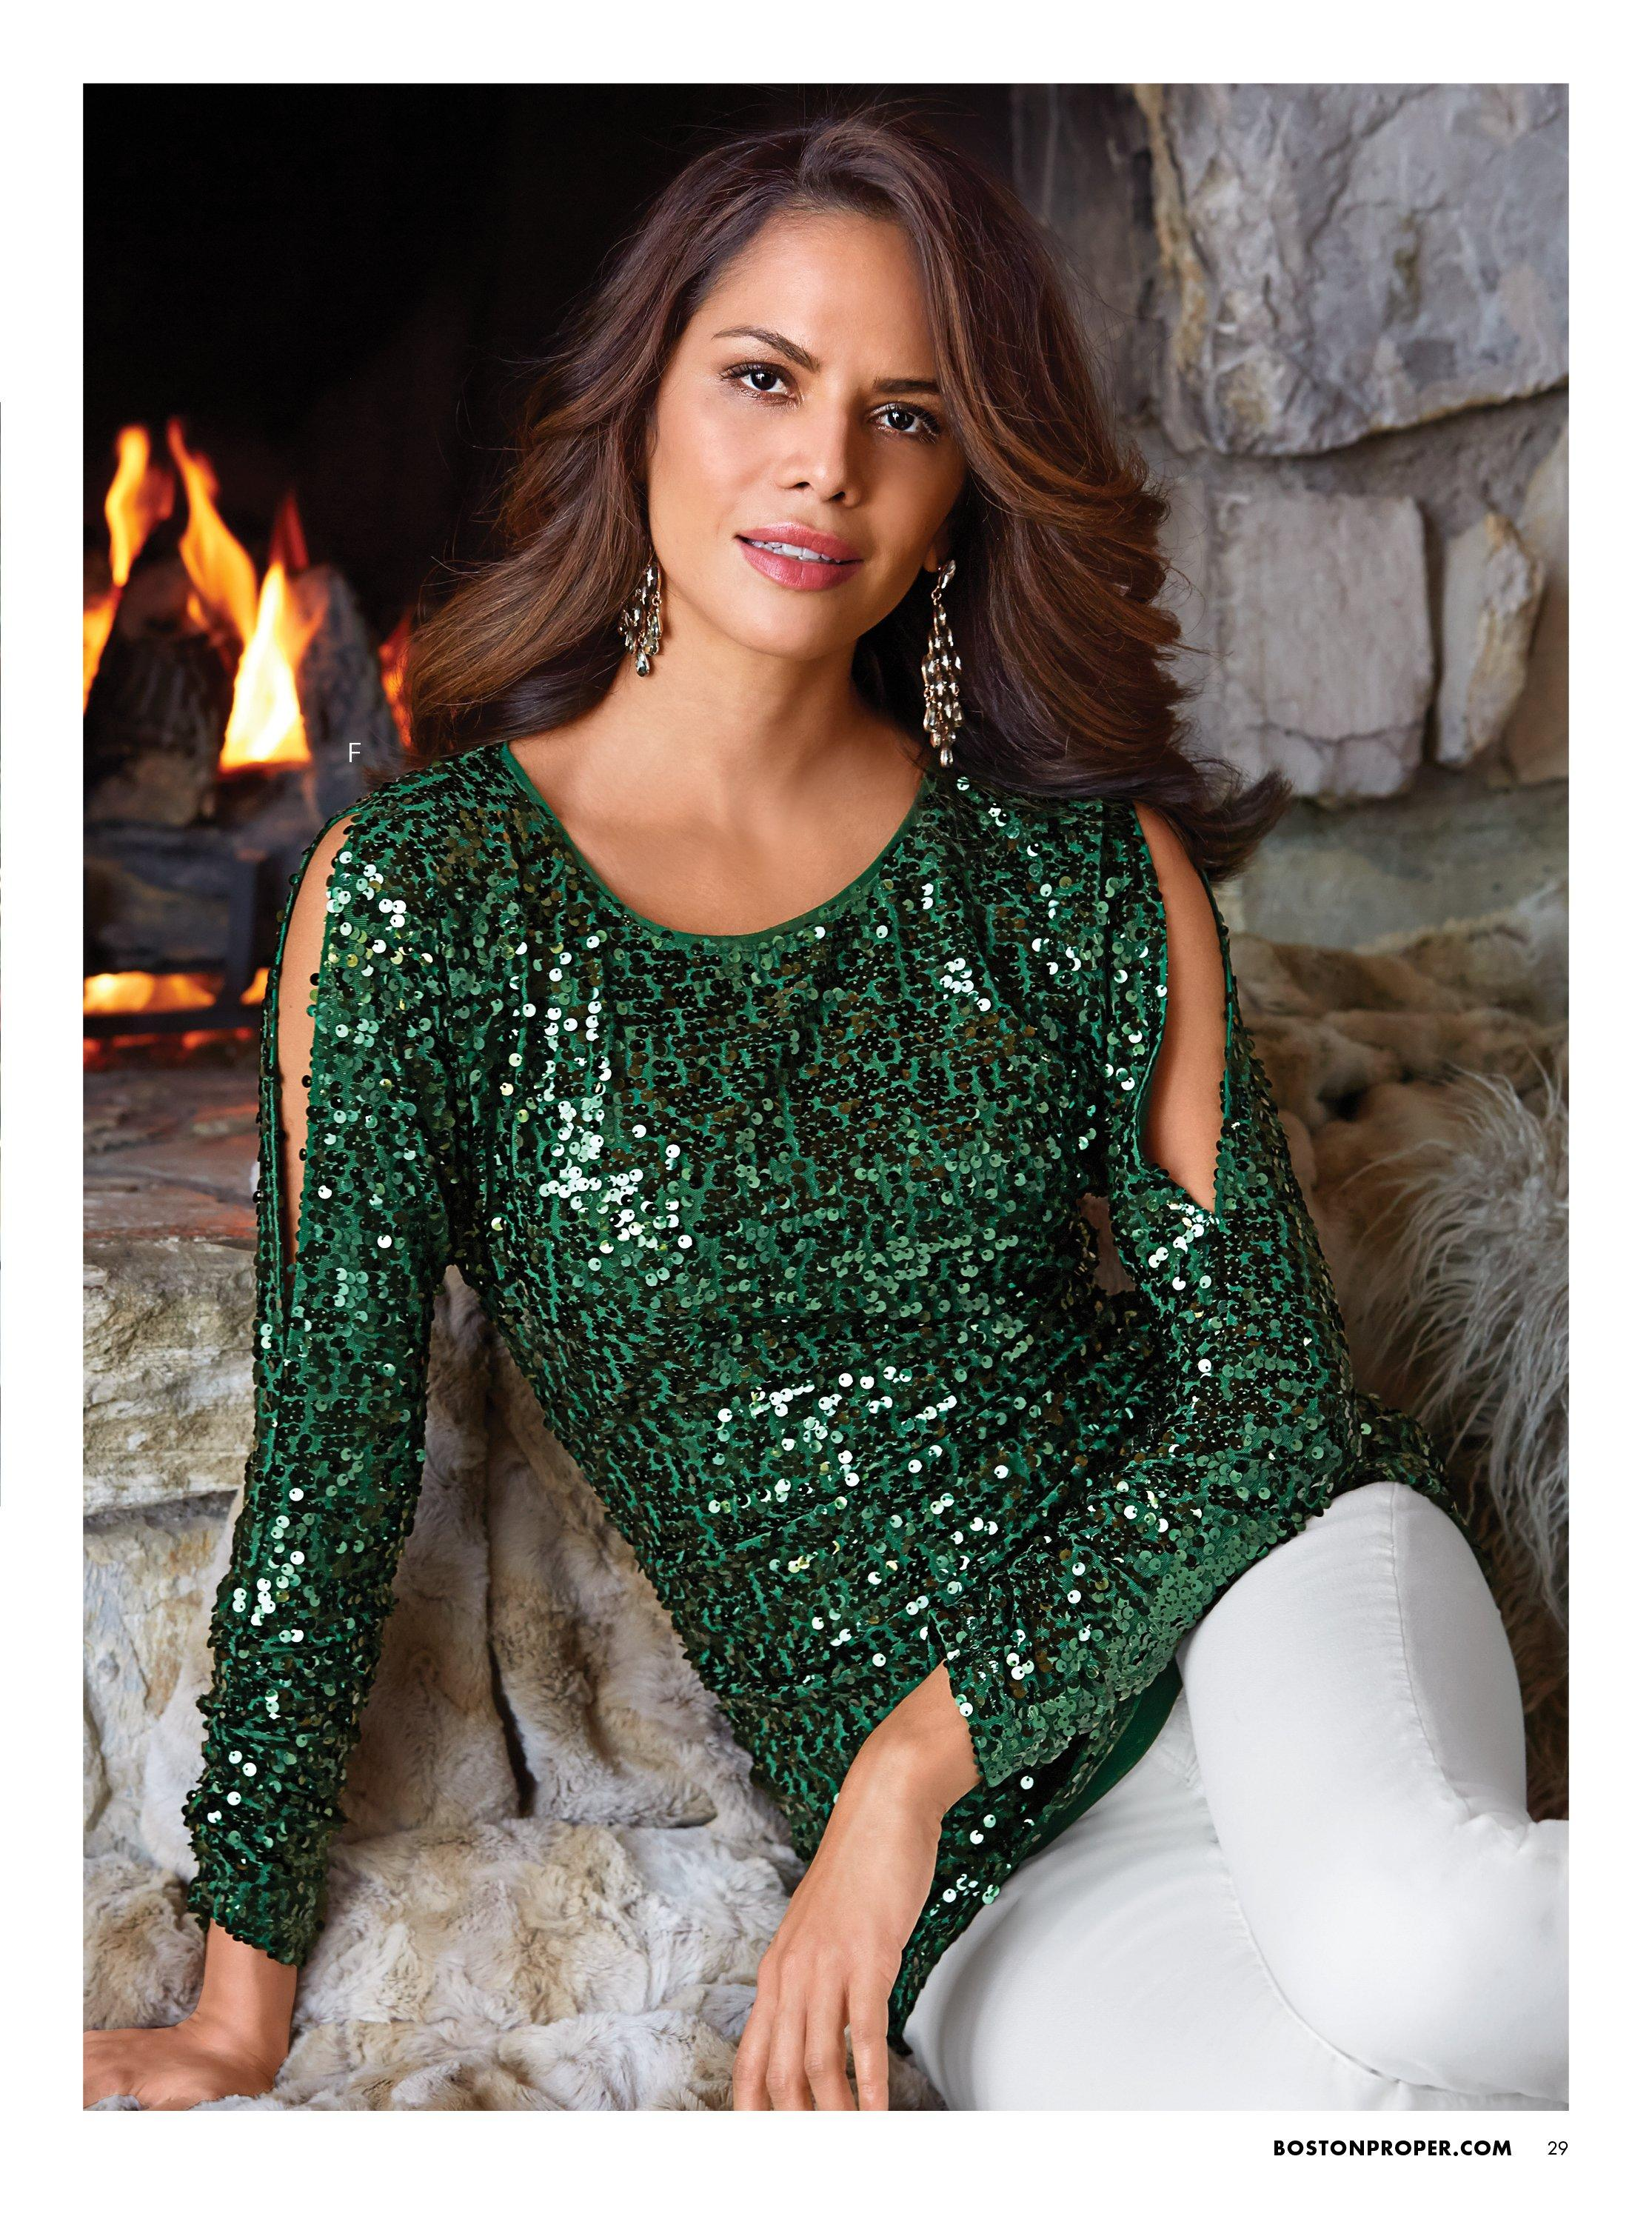 model wearing a green long sleeve cold shoulder sequin top and white jeans.